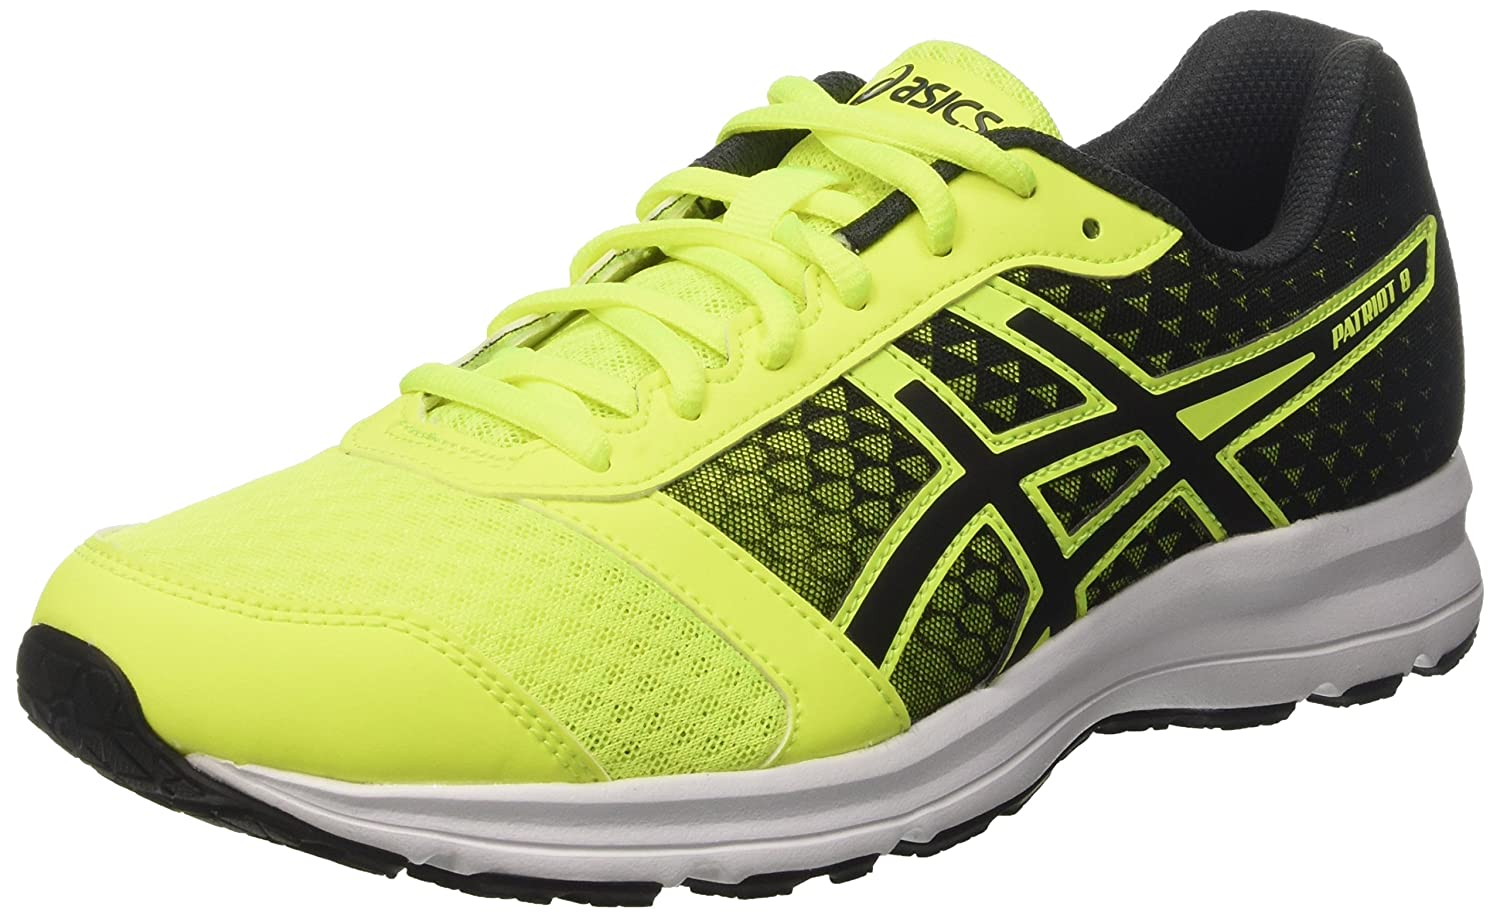 new arrival d3f4a 4cce1 Amazon.com   ASICS Patriot 8 Running Shoes - SS17-11.5 - Yellow   Road  Running